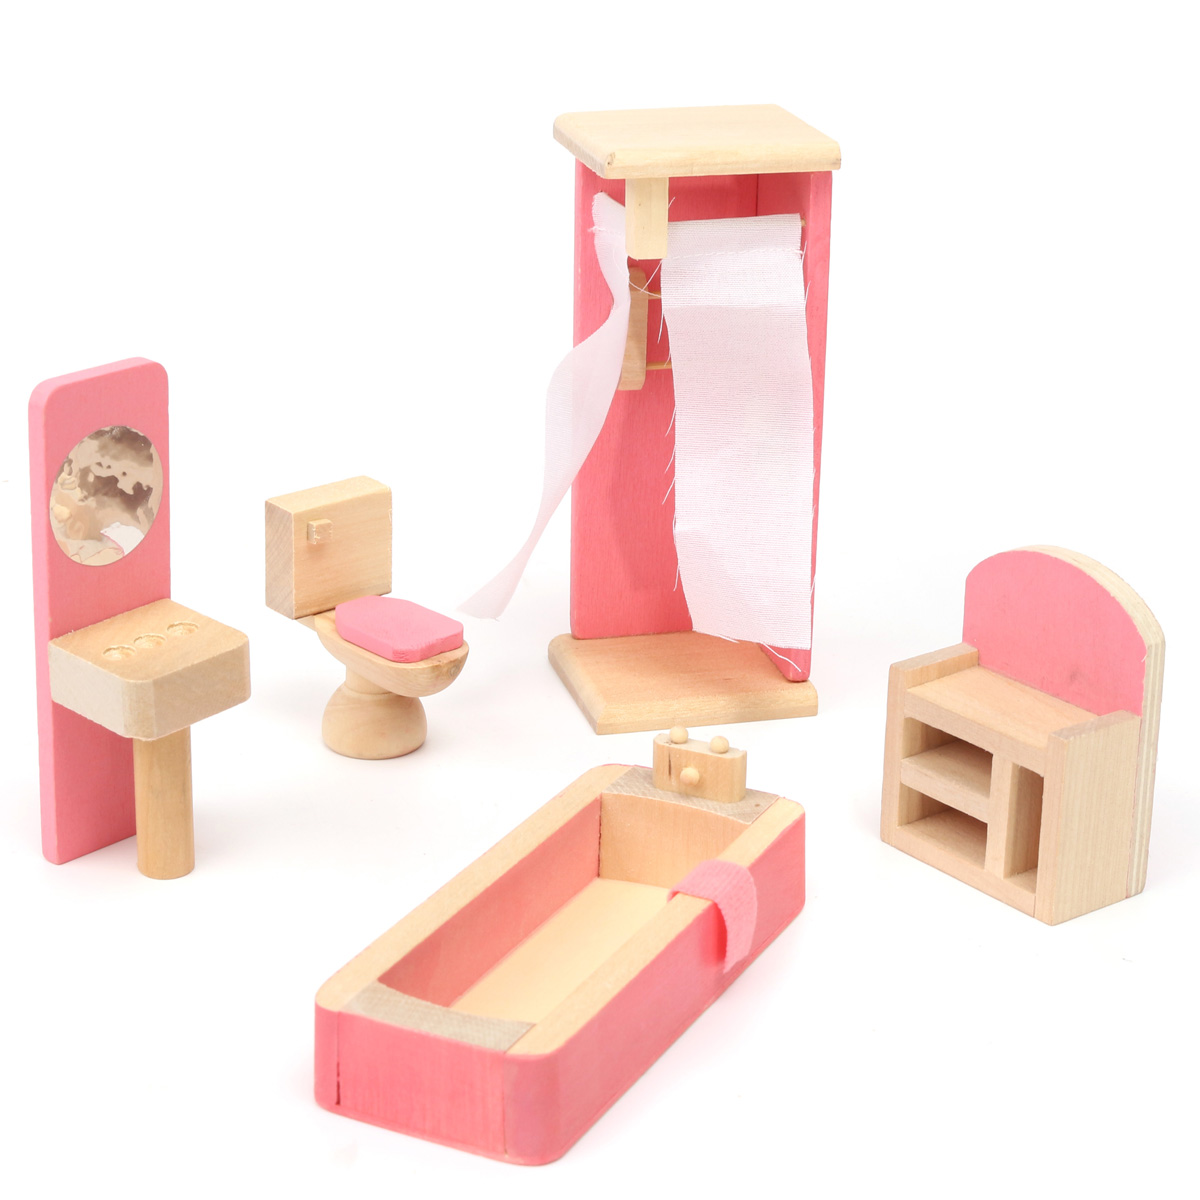 Wooden-Furniture-Room-Set-Dolls-House-Family-Miniature-For-Kids-Children-Toy